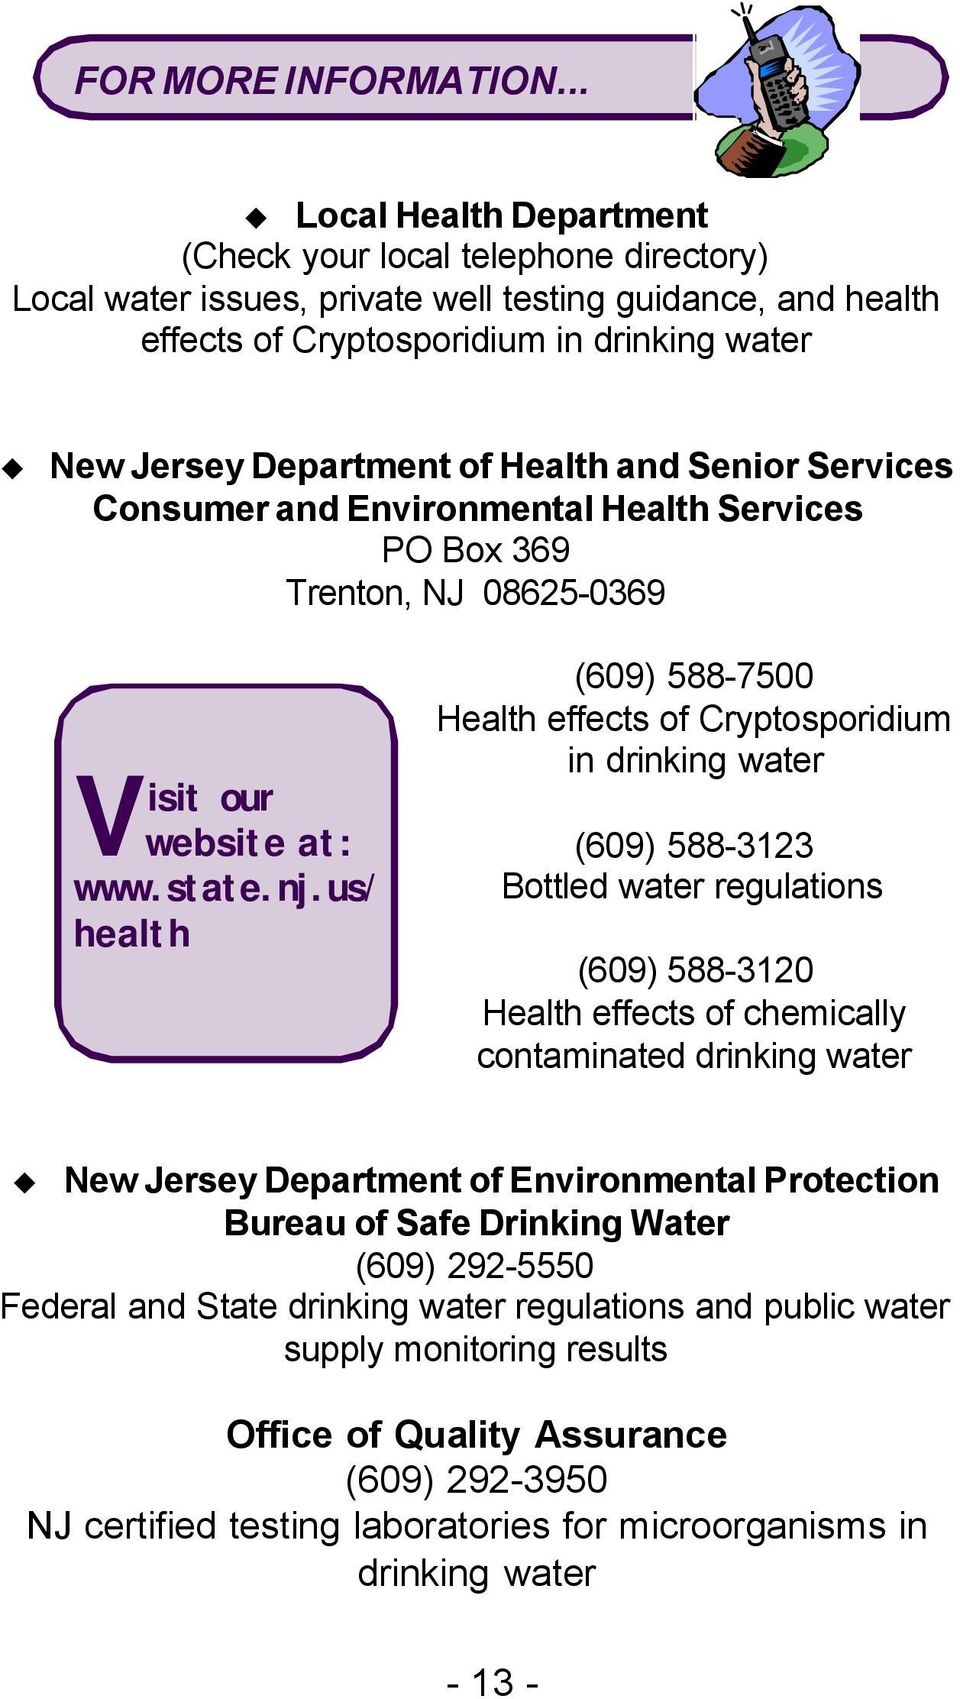 Health and Senior Services Consumer and Environmental Health Services PO Box 369 Trenton, NJ 08625-0369 V isit our website at: www.state.nj.